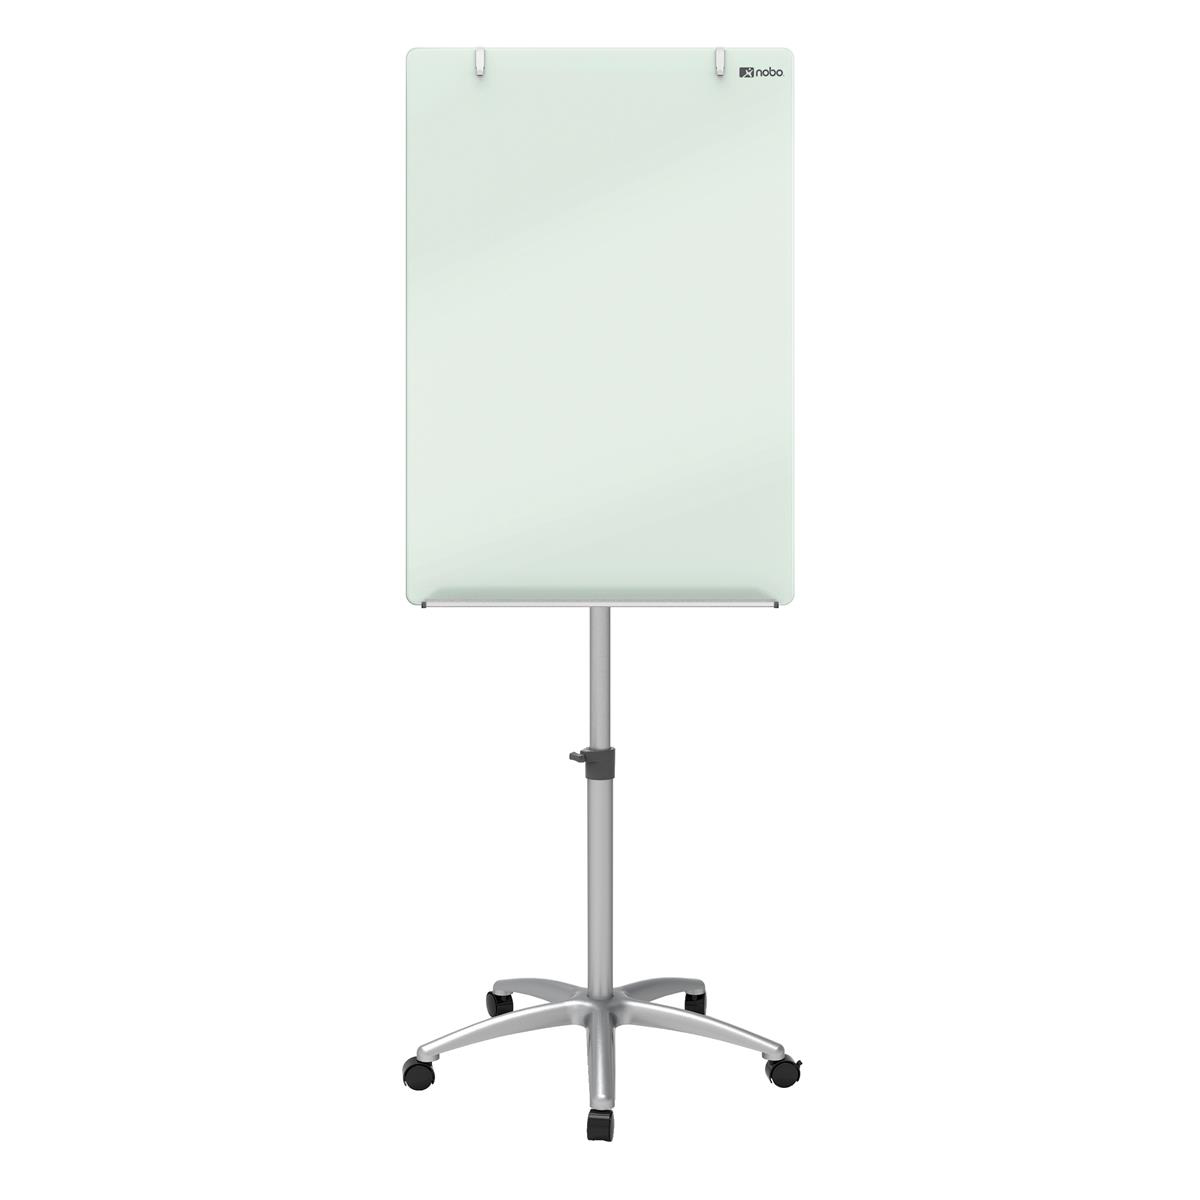 Nobo Brill White Mobile Easel Glass Board Size 700x1000mm W700xOverall Height 1850mm White Ref 1903949